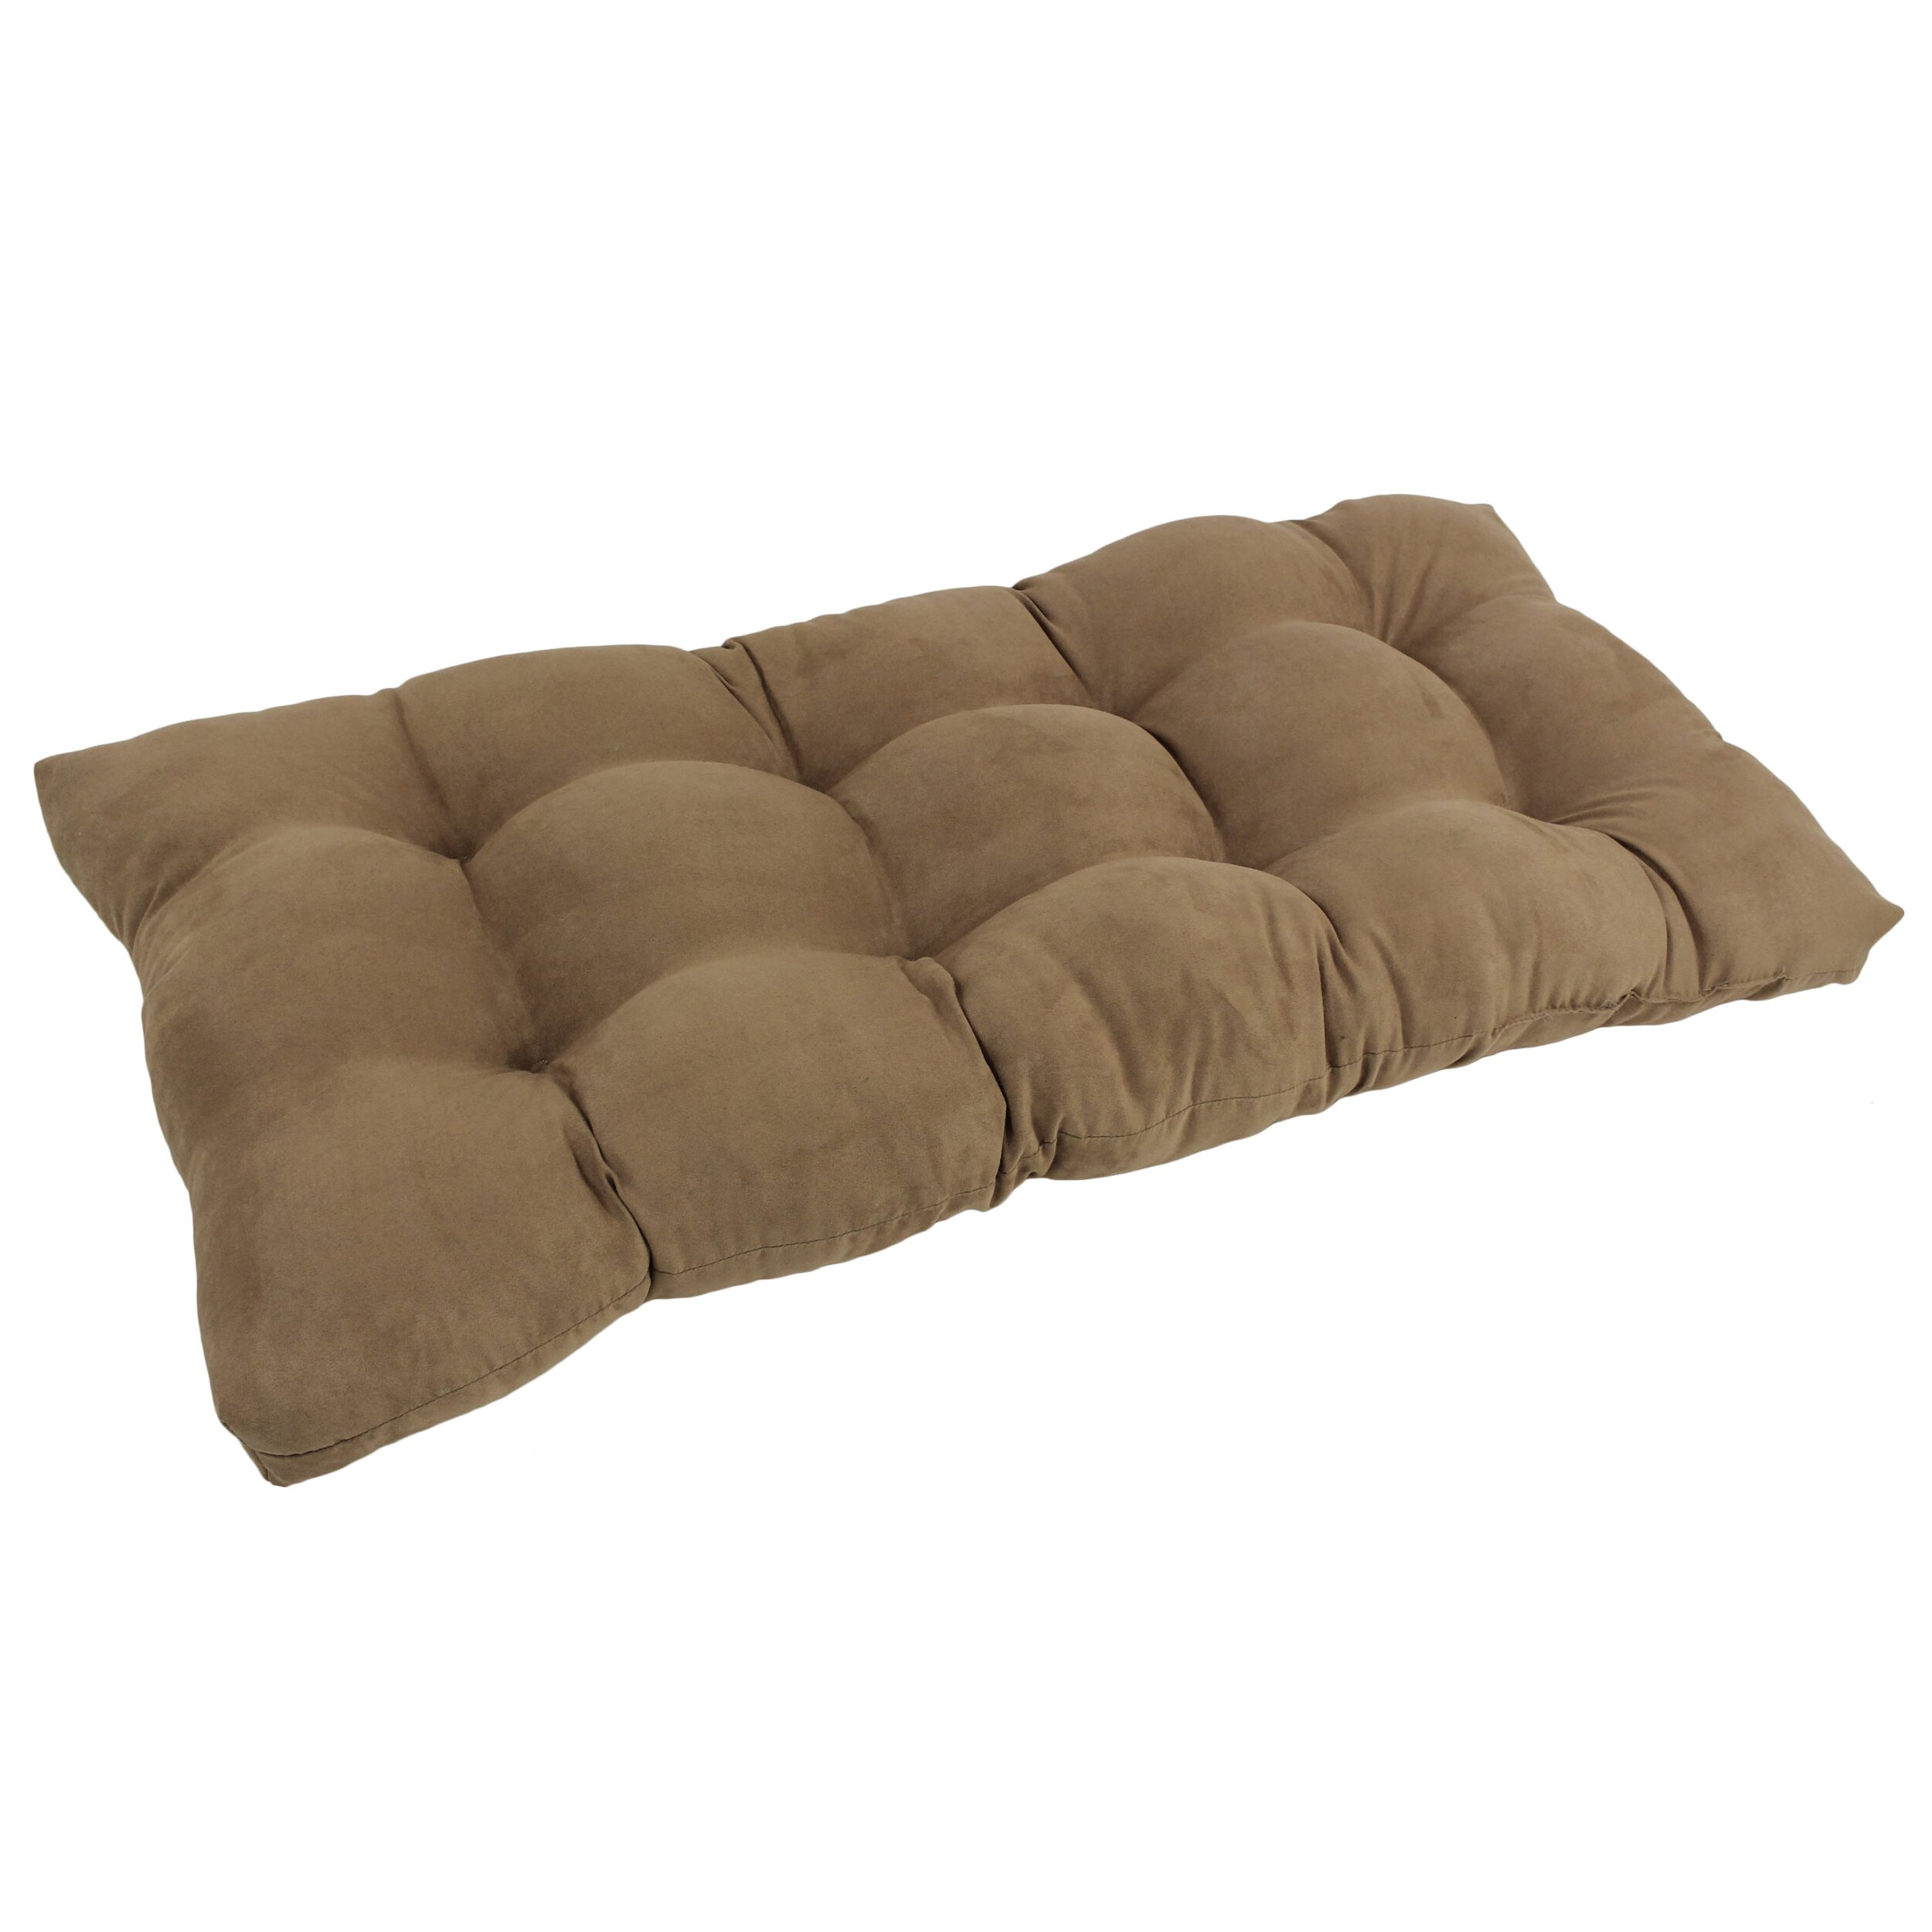 Blazing needles indoor bench cushion reviews wayfair - Indoor bench cushions clearance ...